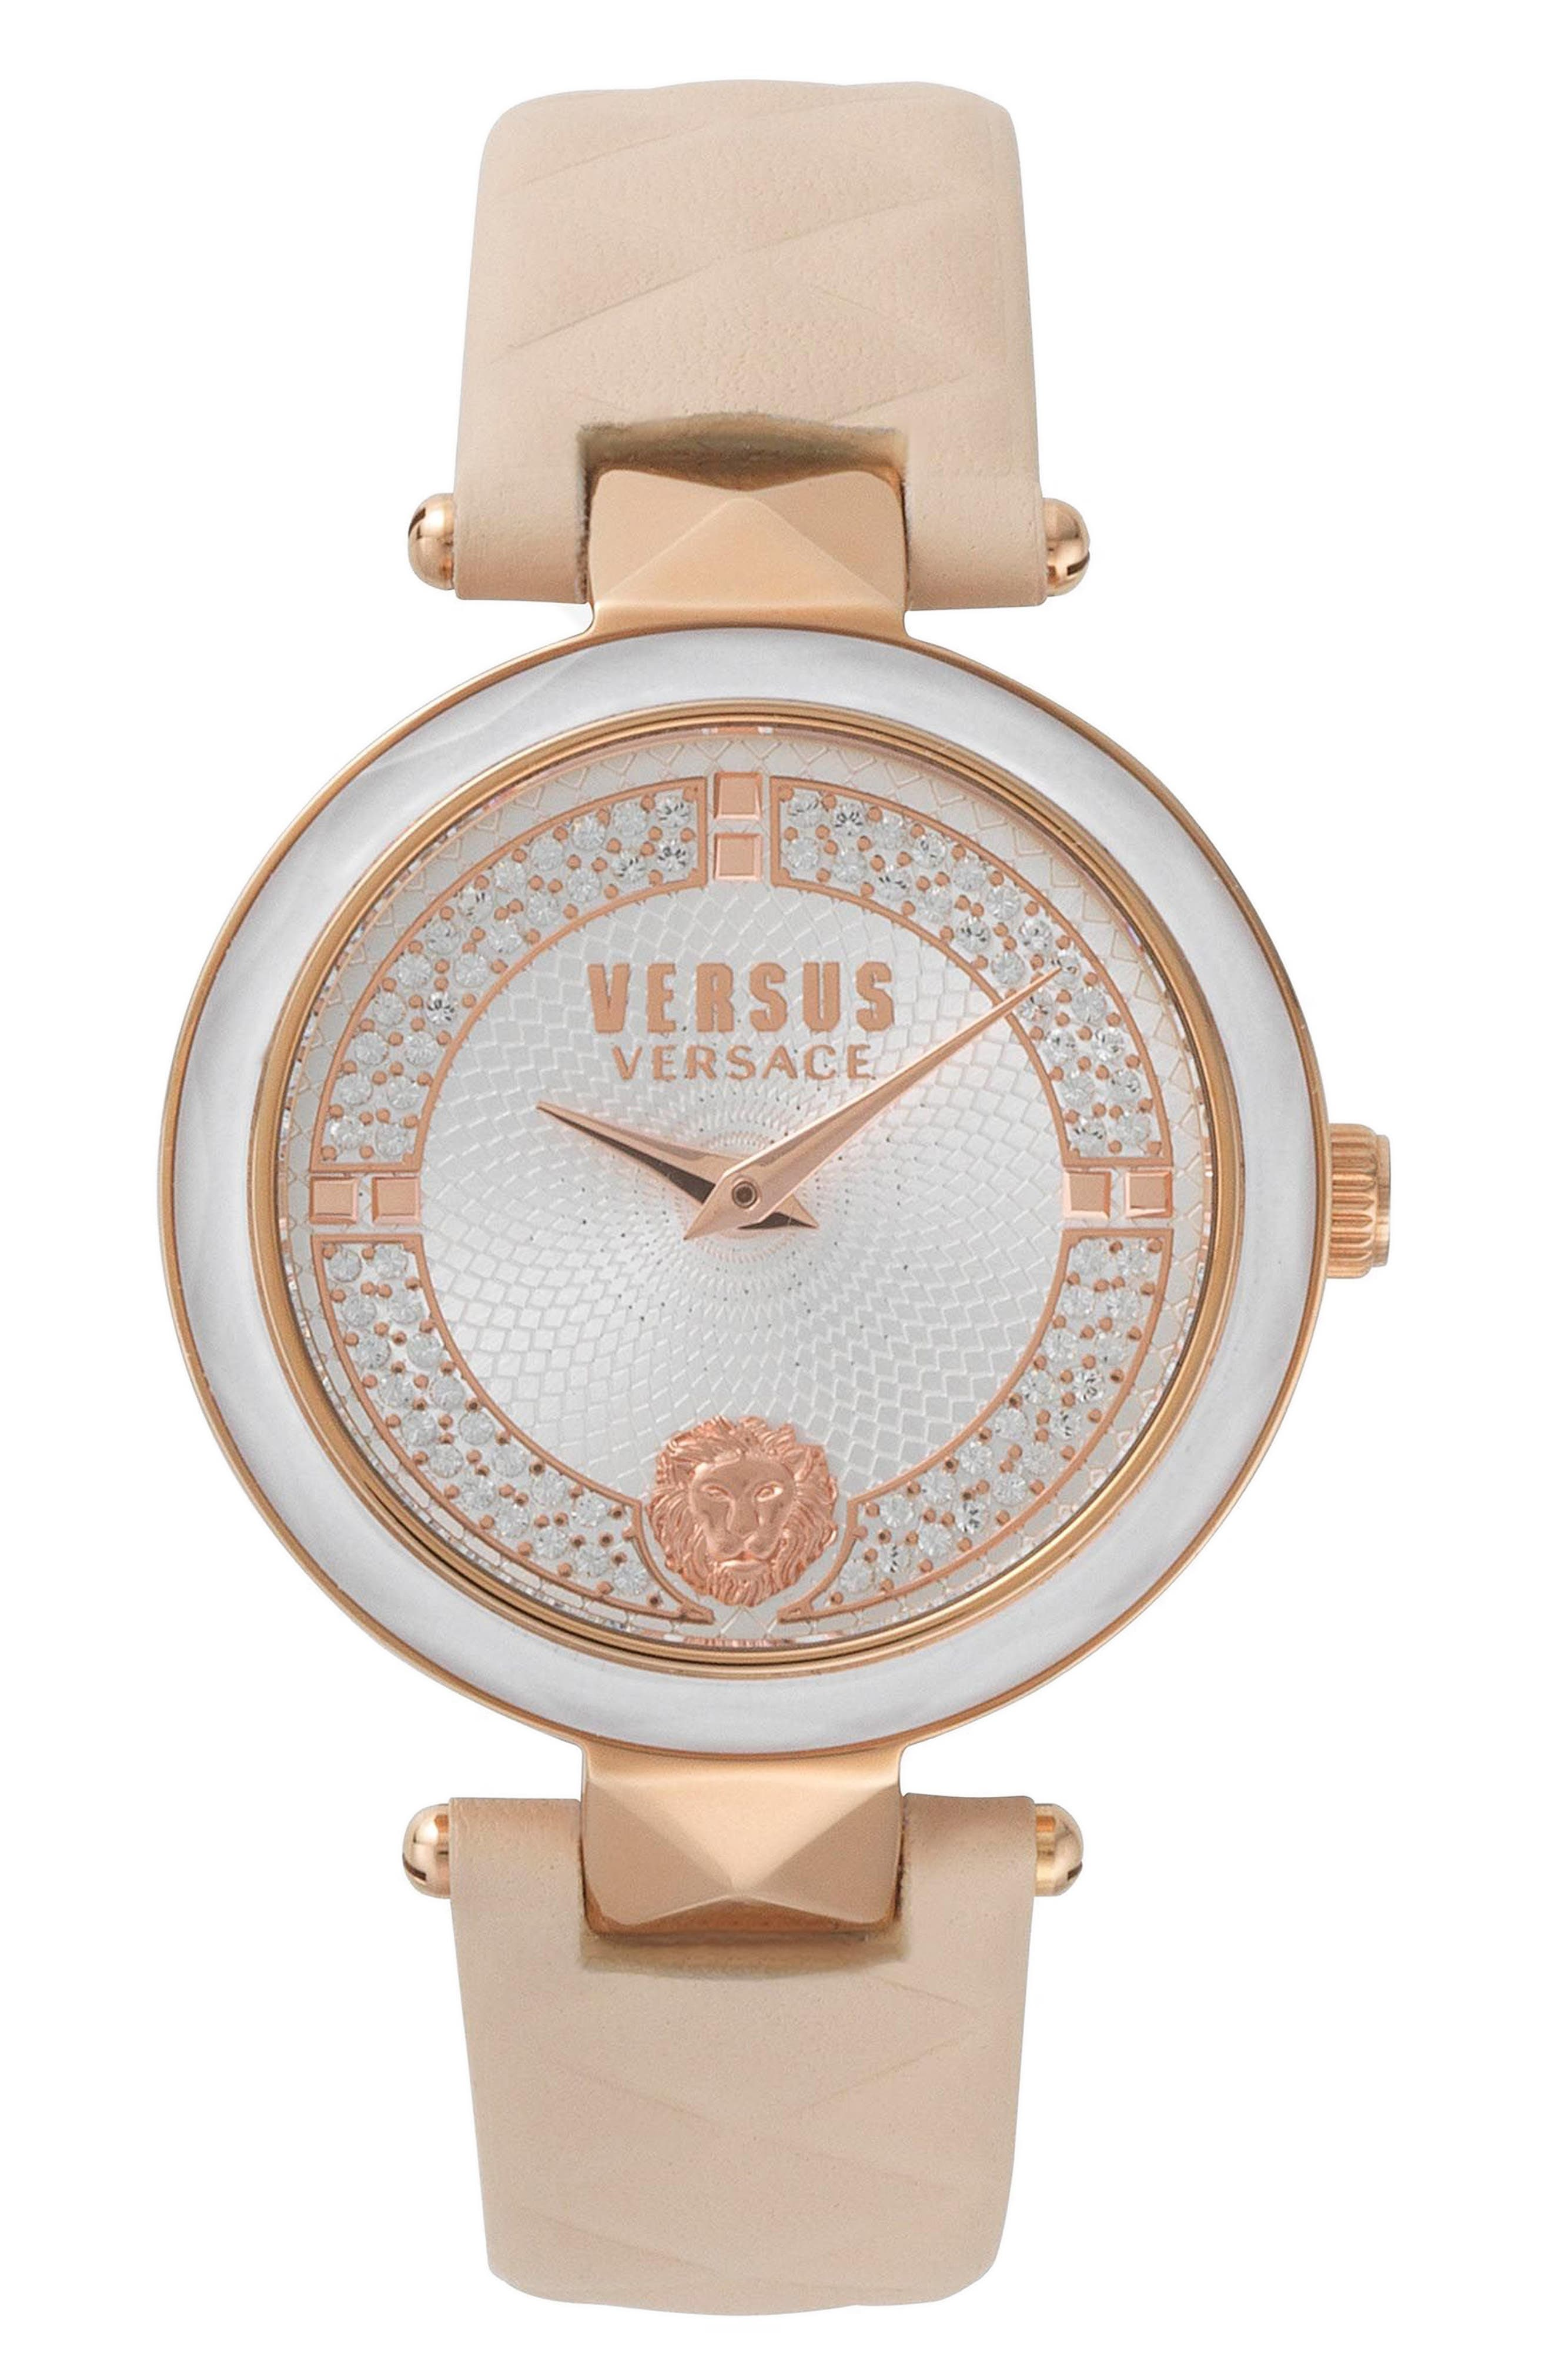 Covent Garden Leather Strap Watch,                             Main thumbnail 1, color,                             BEIGE/ WHITE/ ROSE GOLD